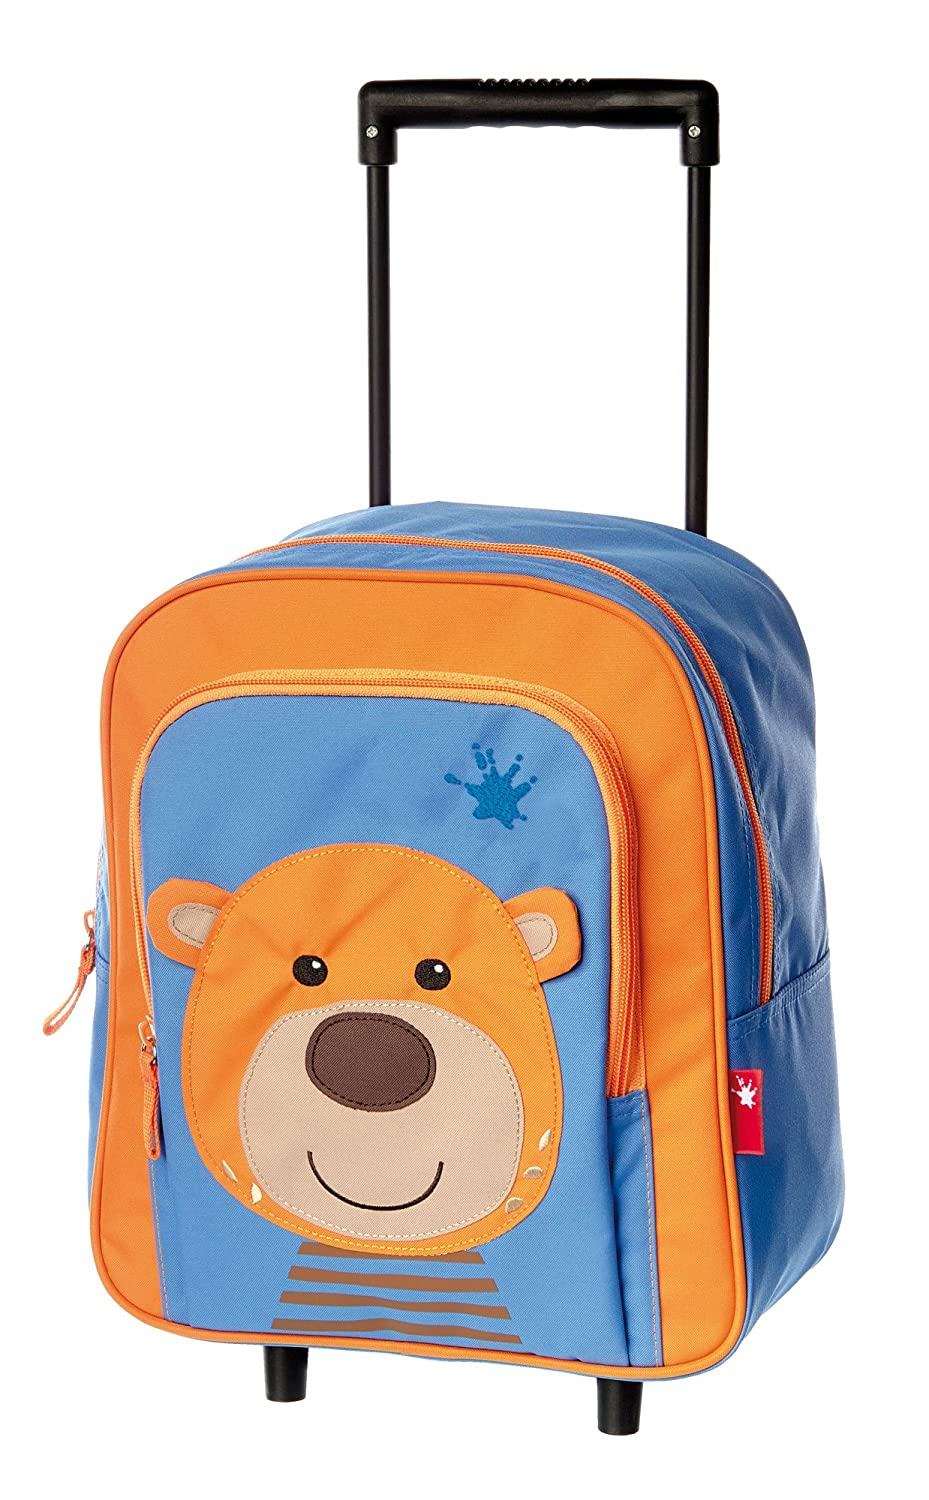 Bleu//Orange 30 cm sigikid 24653 Unisexe Mini Trolley Ours Bagage Enfant 9 L